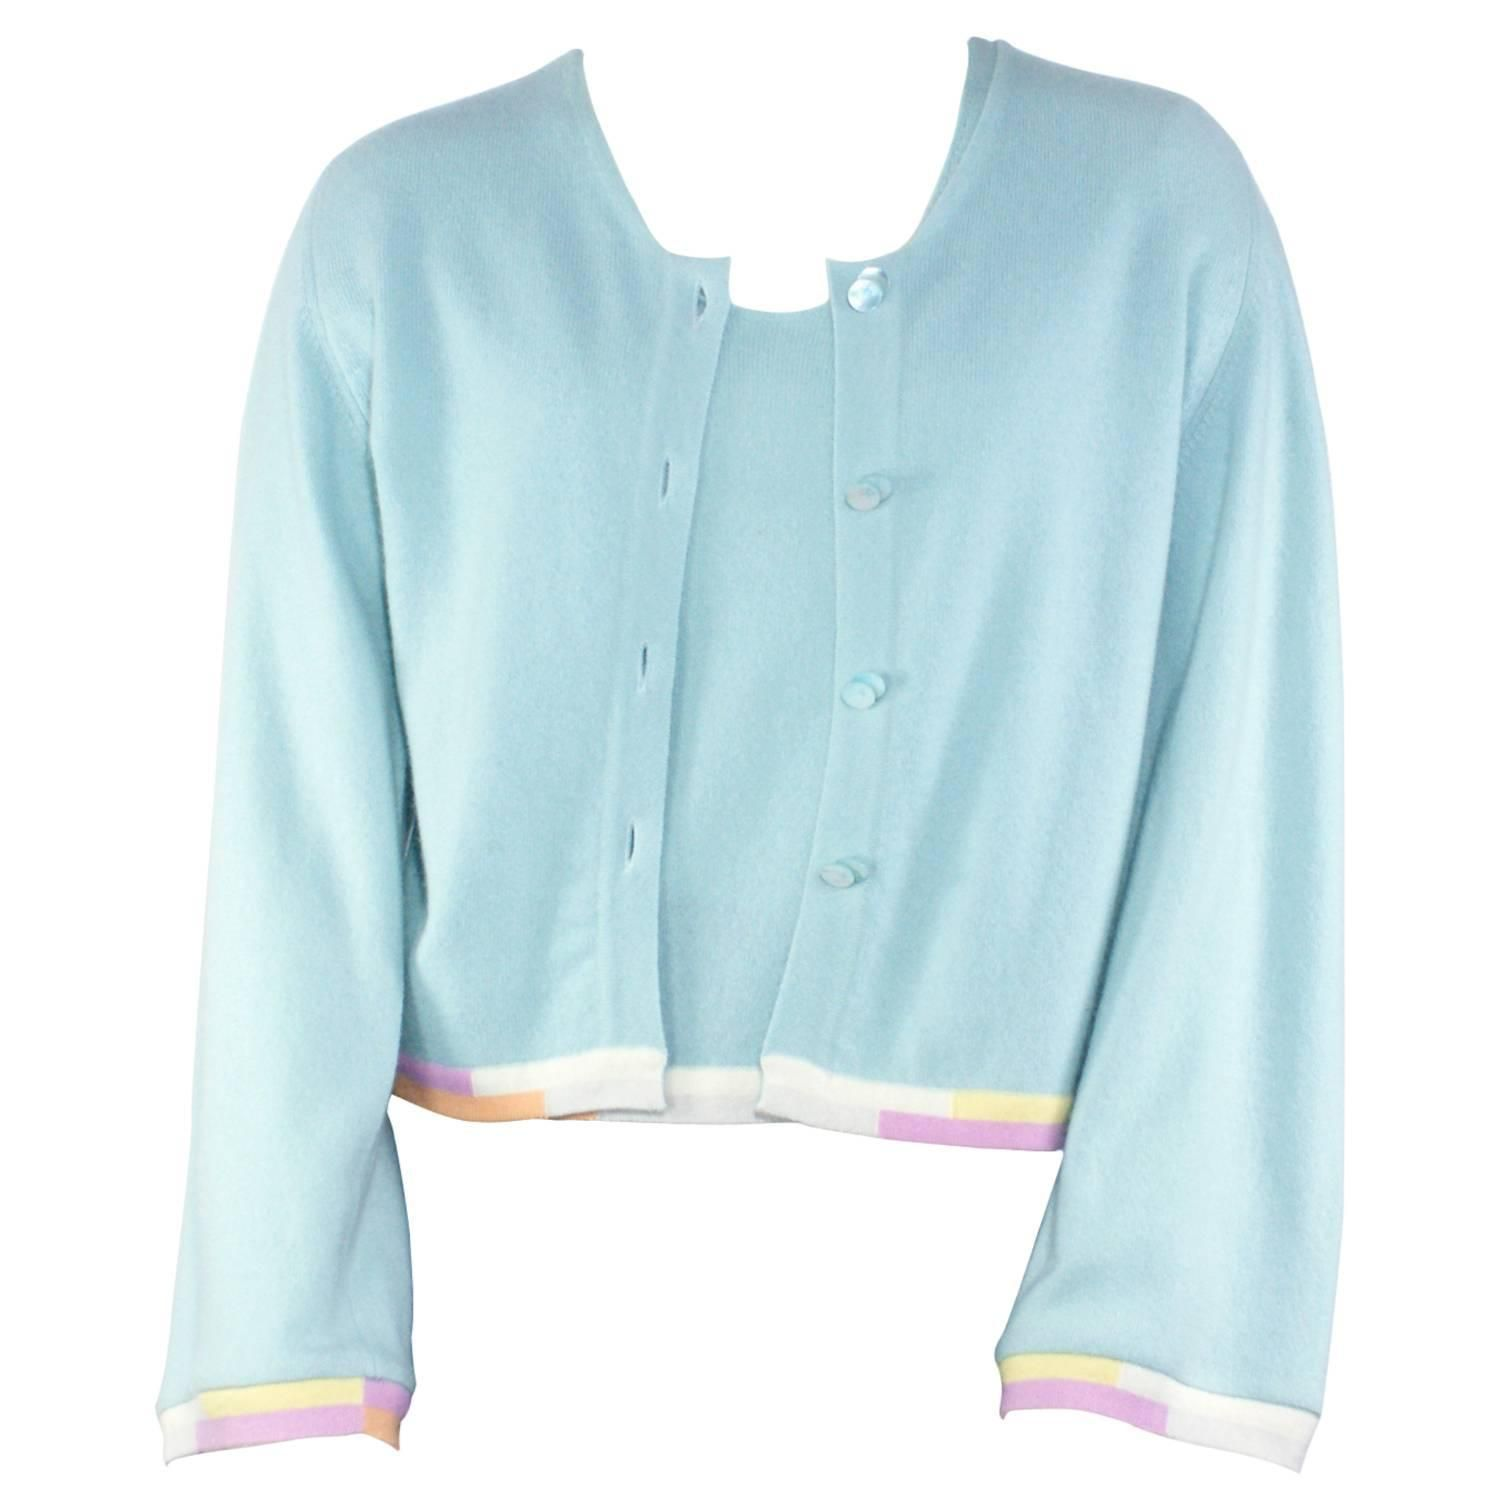 Chanel Turquoise Cashmere Two Piece Cardigan Set | Two pieces ...